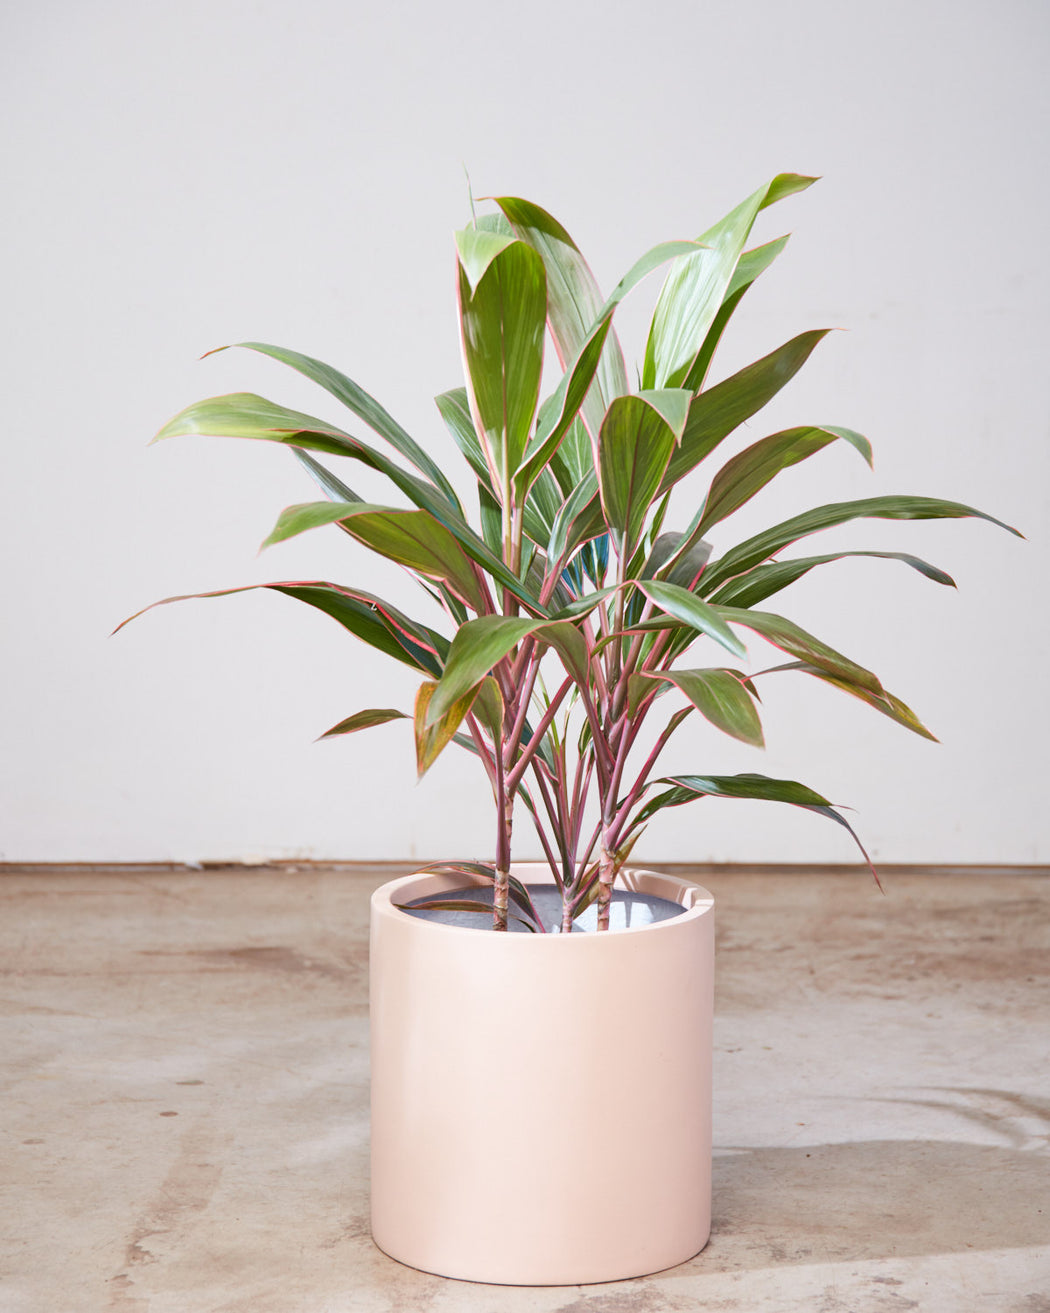 "CORDYLINE 'PINK DIAMOND' 10"" Grower Pot"